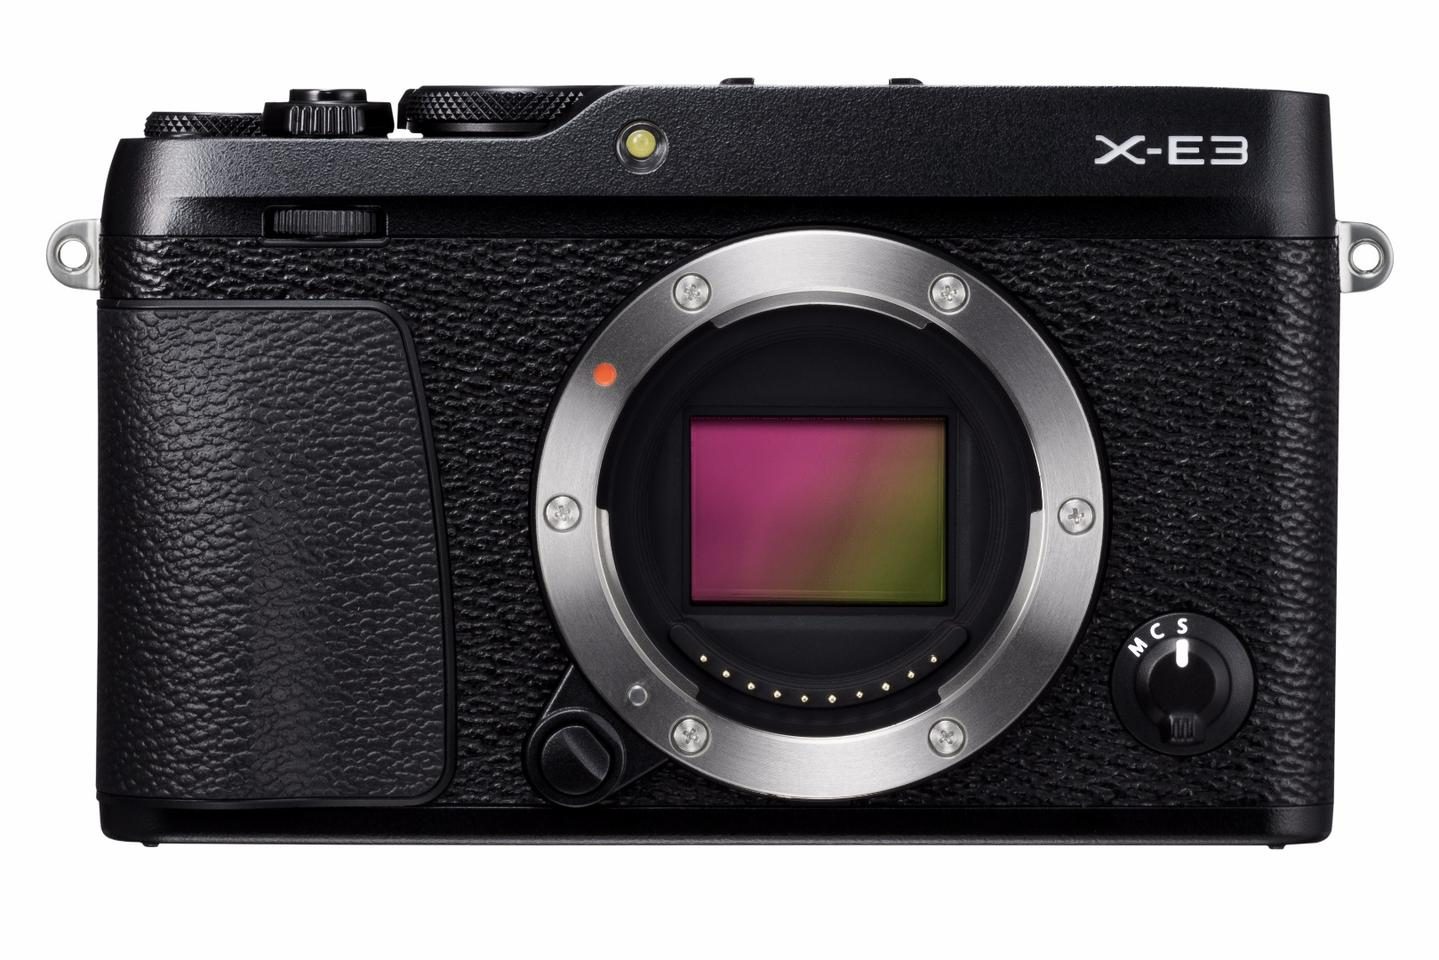 The Fujifilm X-E3 features a 24.3 MP X-Trans CMOS III (23.5 x 15.6 mm) image sensor and X-Processor Pro engine combination